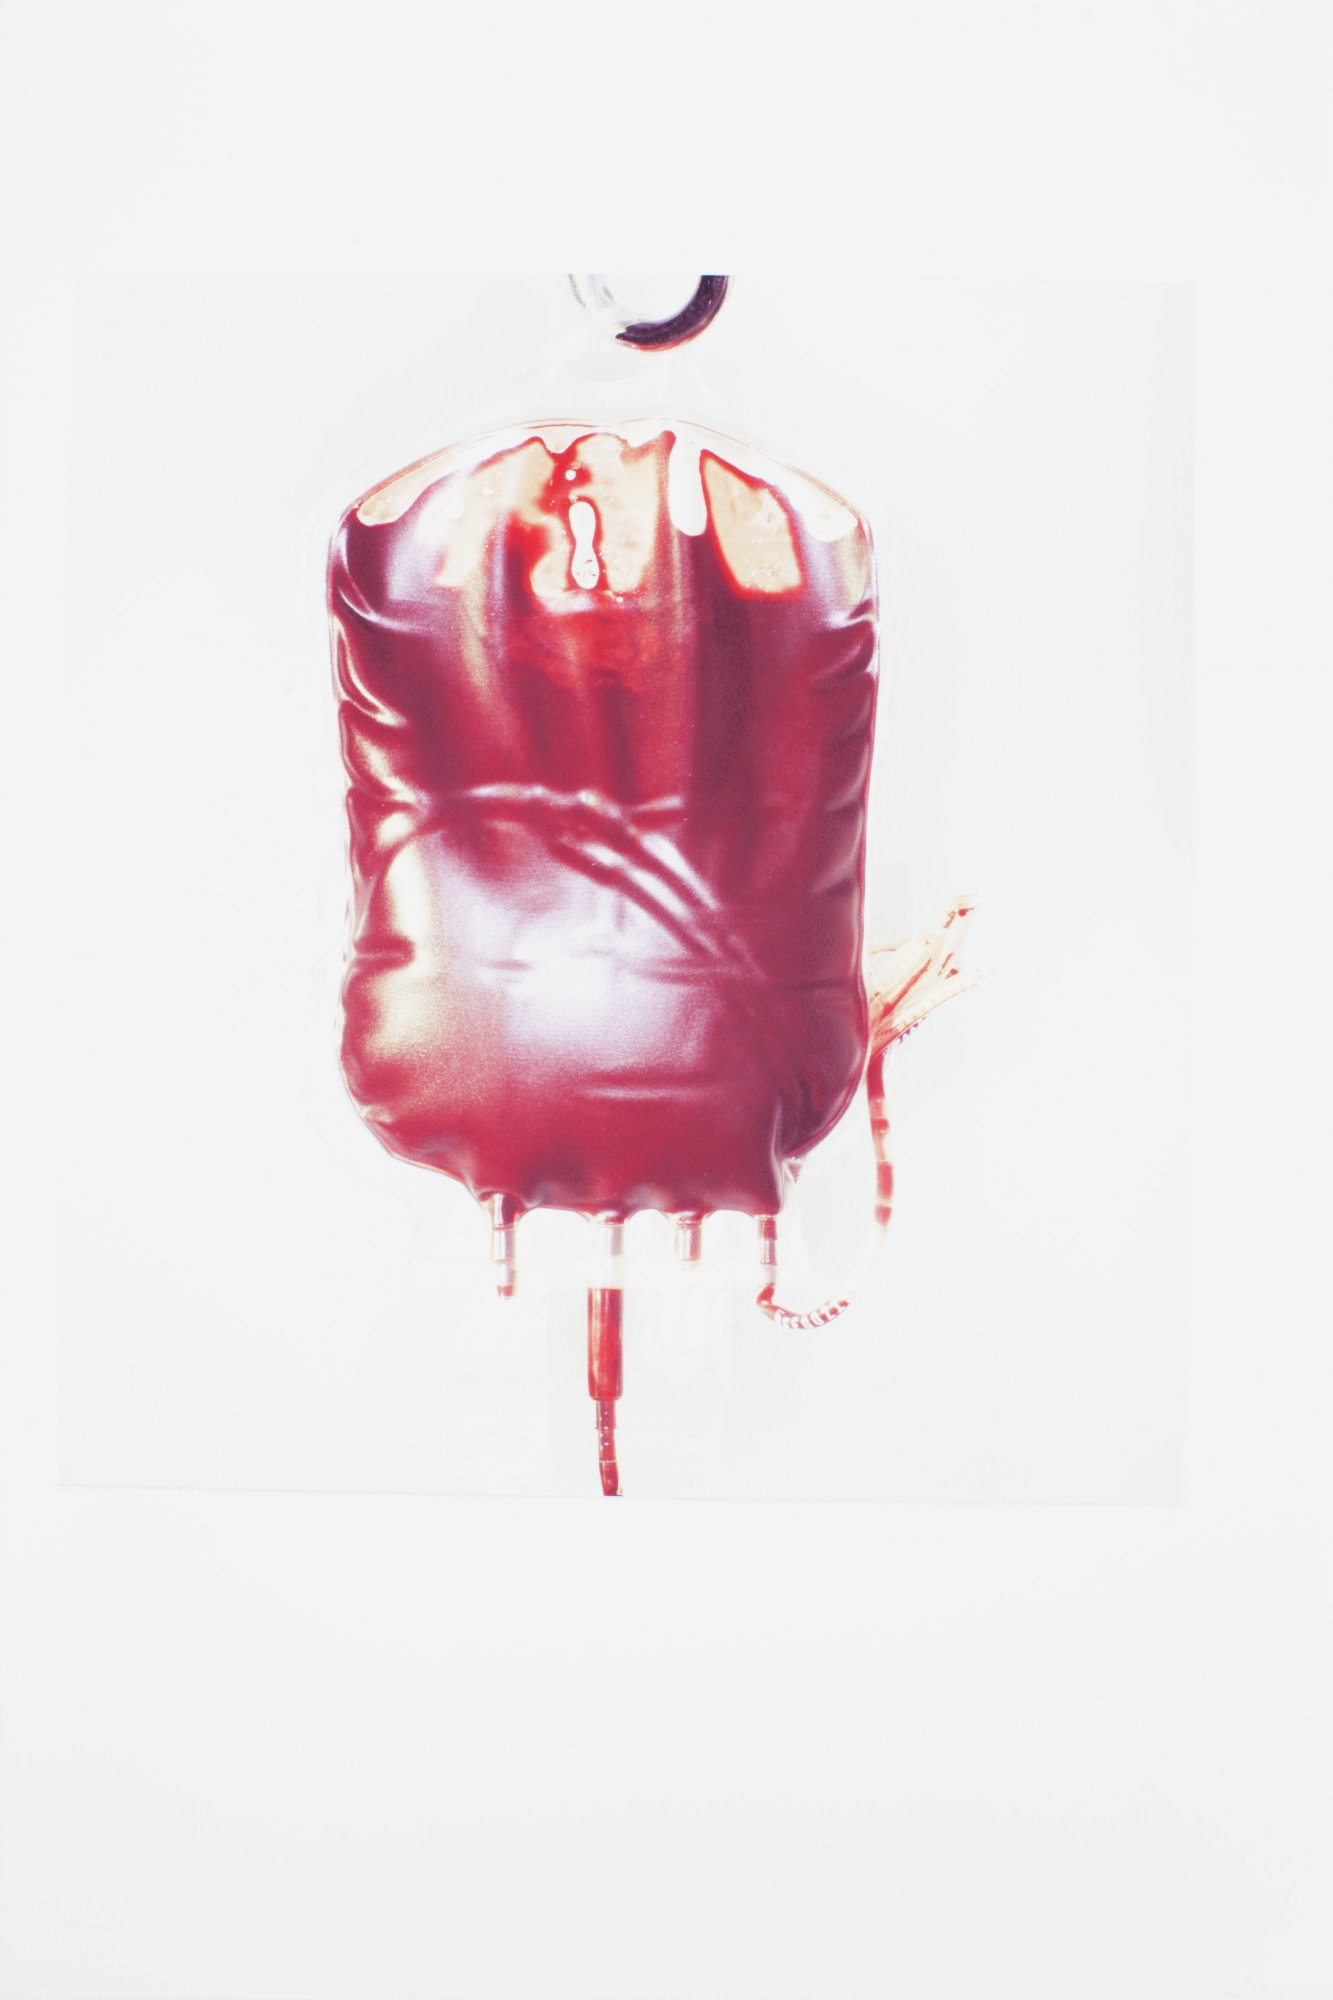 Blood. Advertising. Getty Images, stock photography.  Photographicworkshopslondon.com, Learning Photography, Film photography courses London